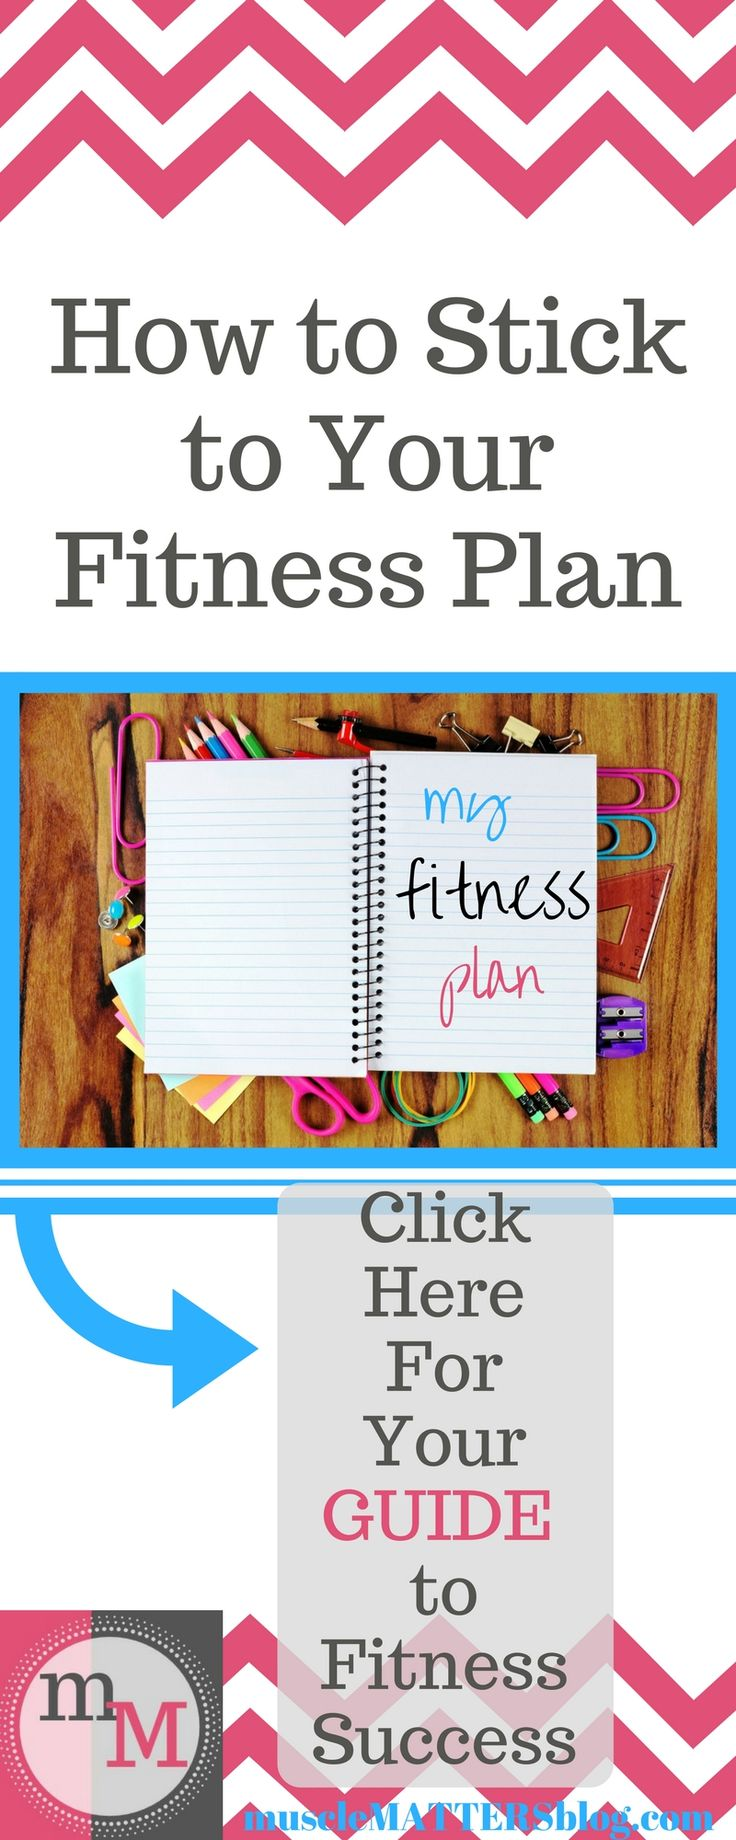 How to Stick to Your Fitness Plan | We know just getting started with a fitness routine is the toughest hurdle to clear, but keeping your will to stick with it can be just as difficult. Click to get real-world tips that will launch your fitness motivation through the roof and have you stuck like glue to your gym workout routine, for good.